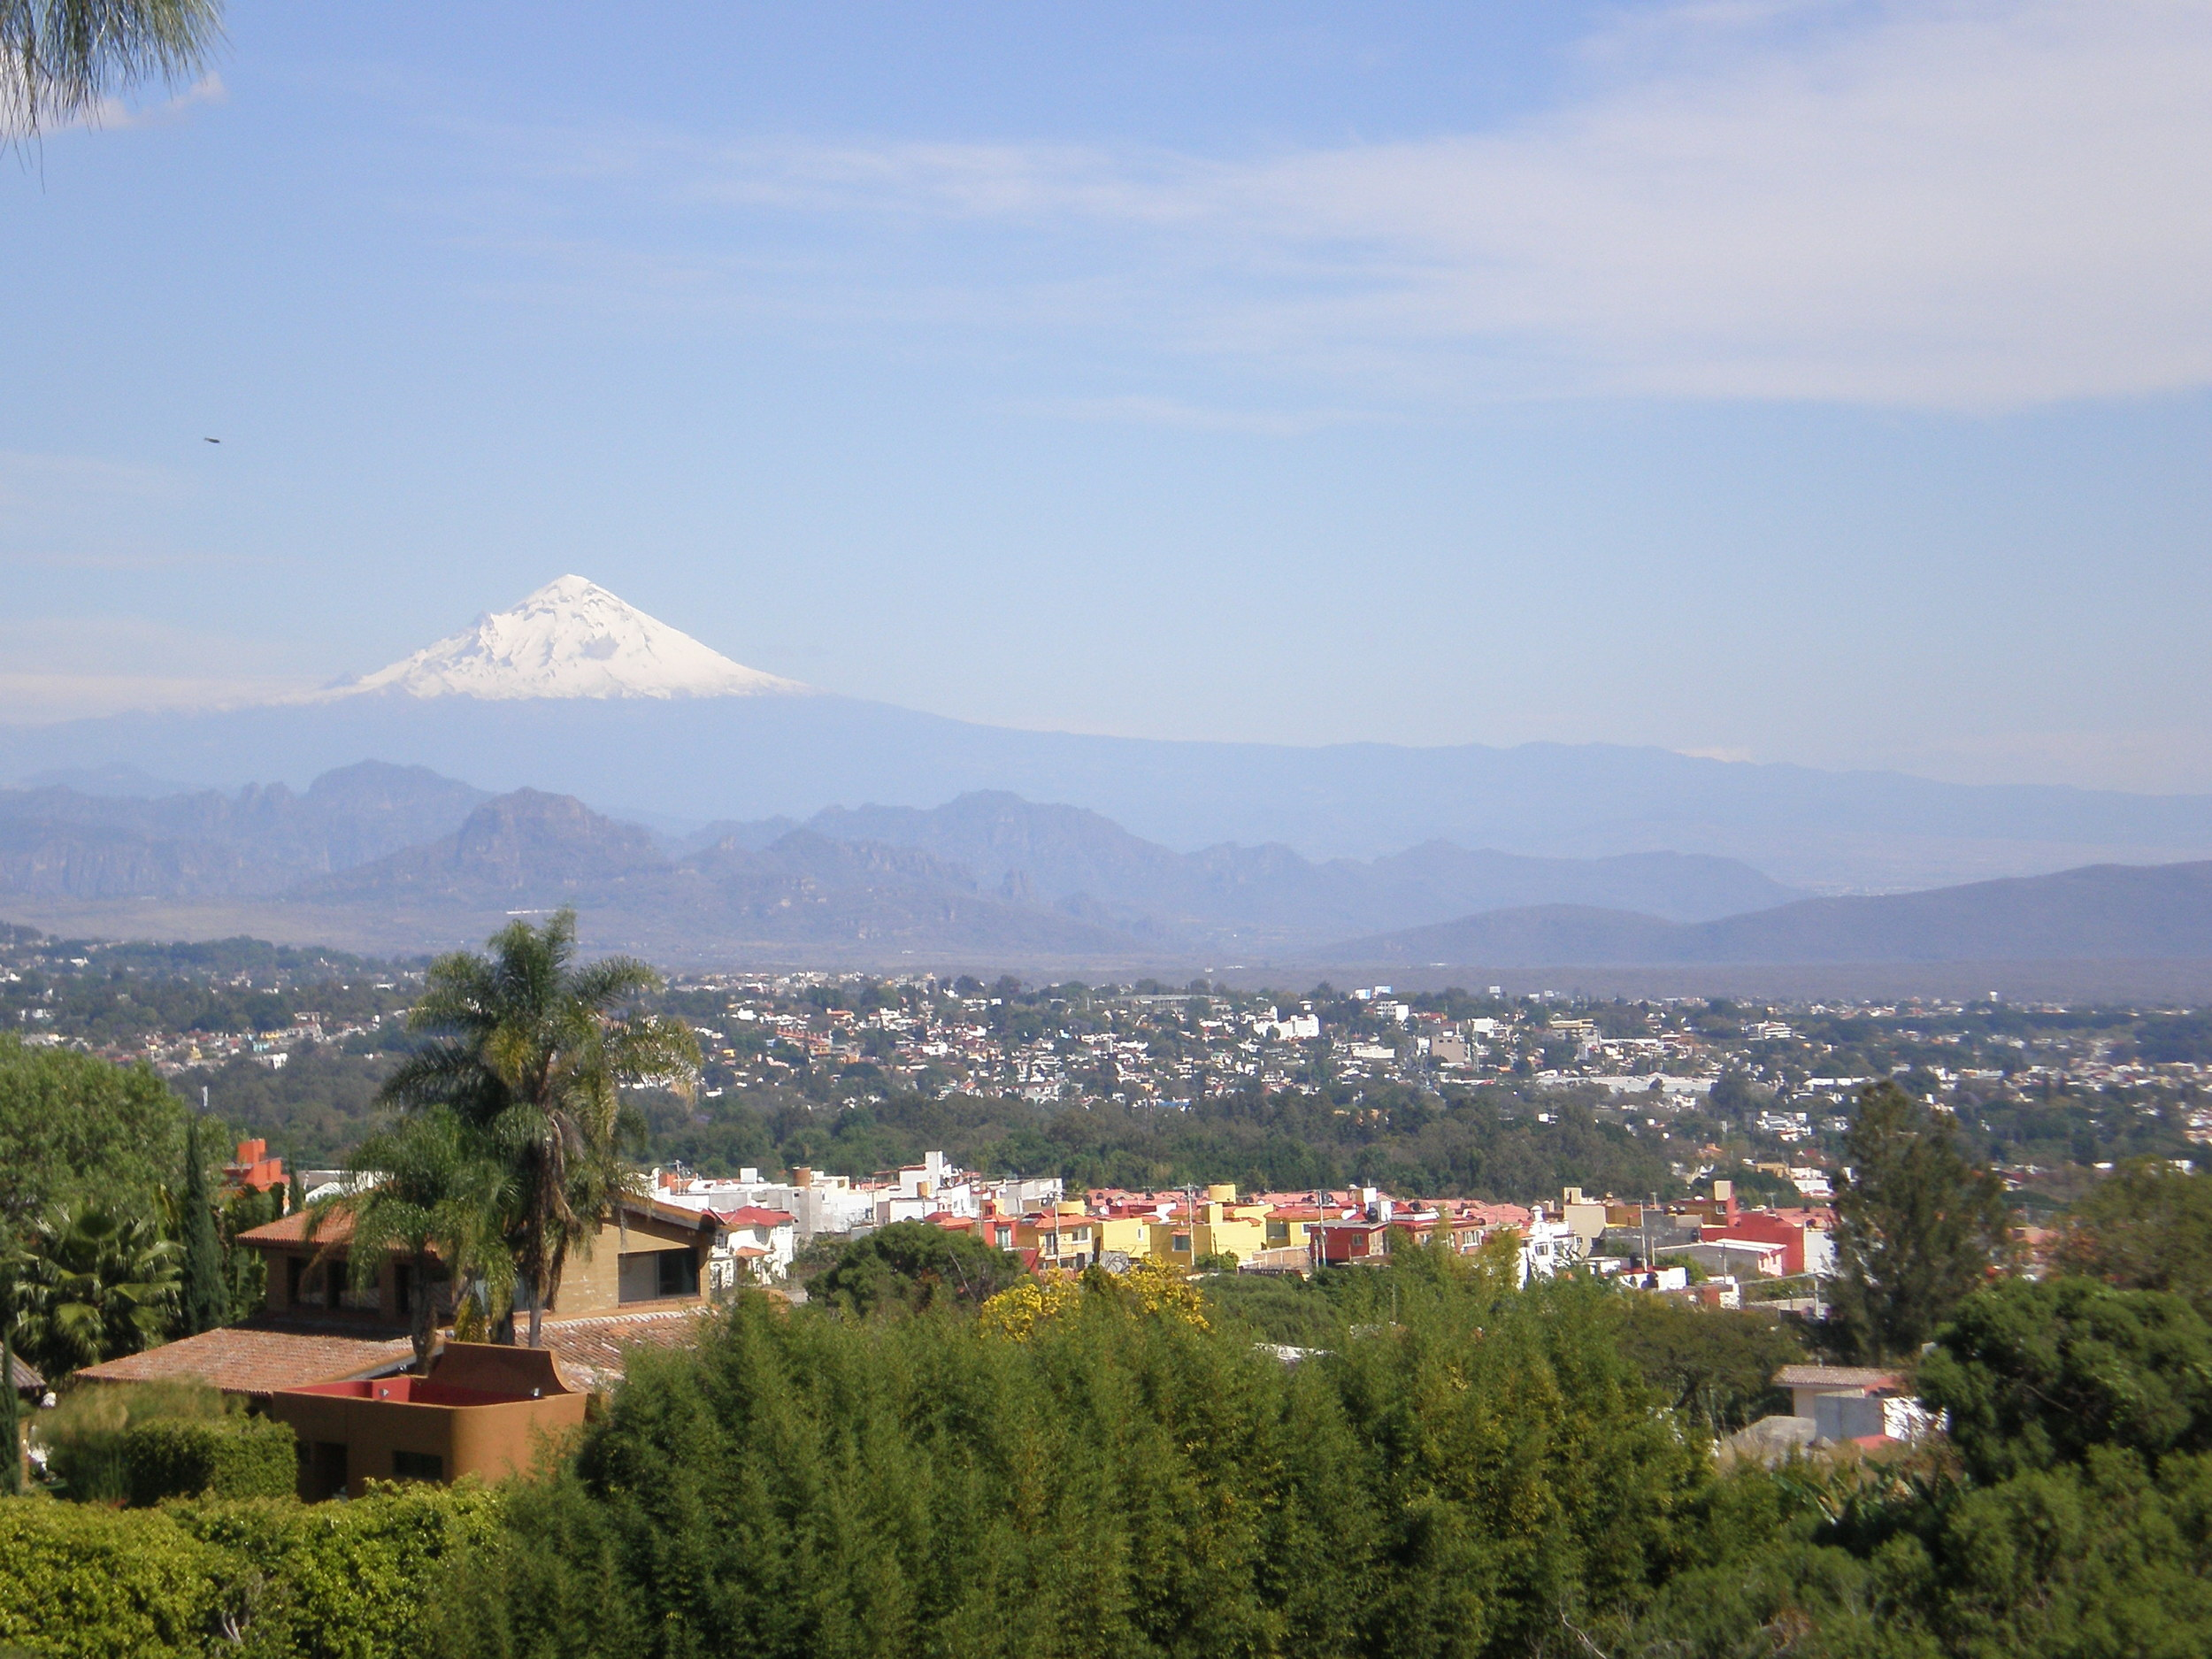 The view of Cuernavaca from the Quest Mexico base.